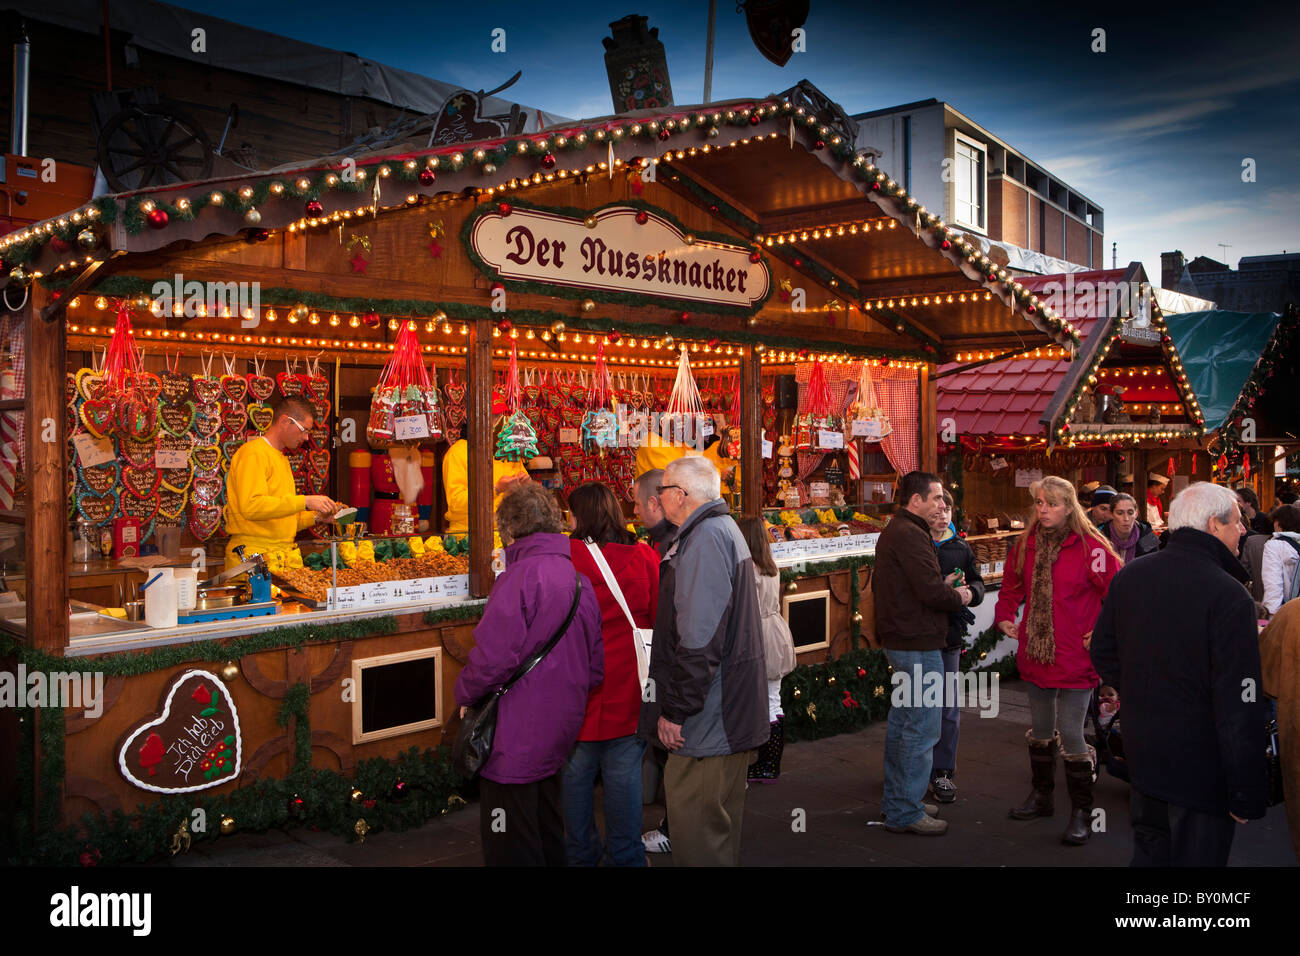 UK, England, Yorkshire, Leeds, Milennium Square, Christkindelmarkt, shoppers browsing confectionery stall - Stock Image